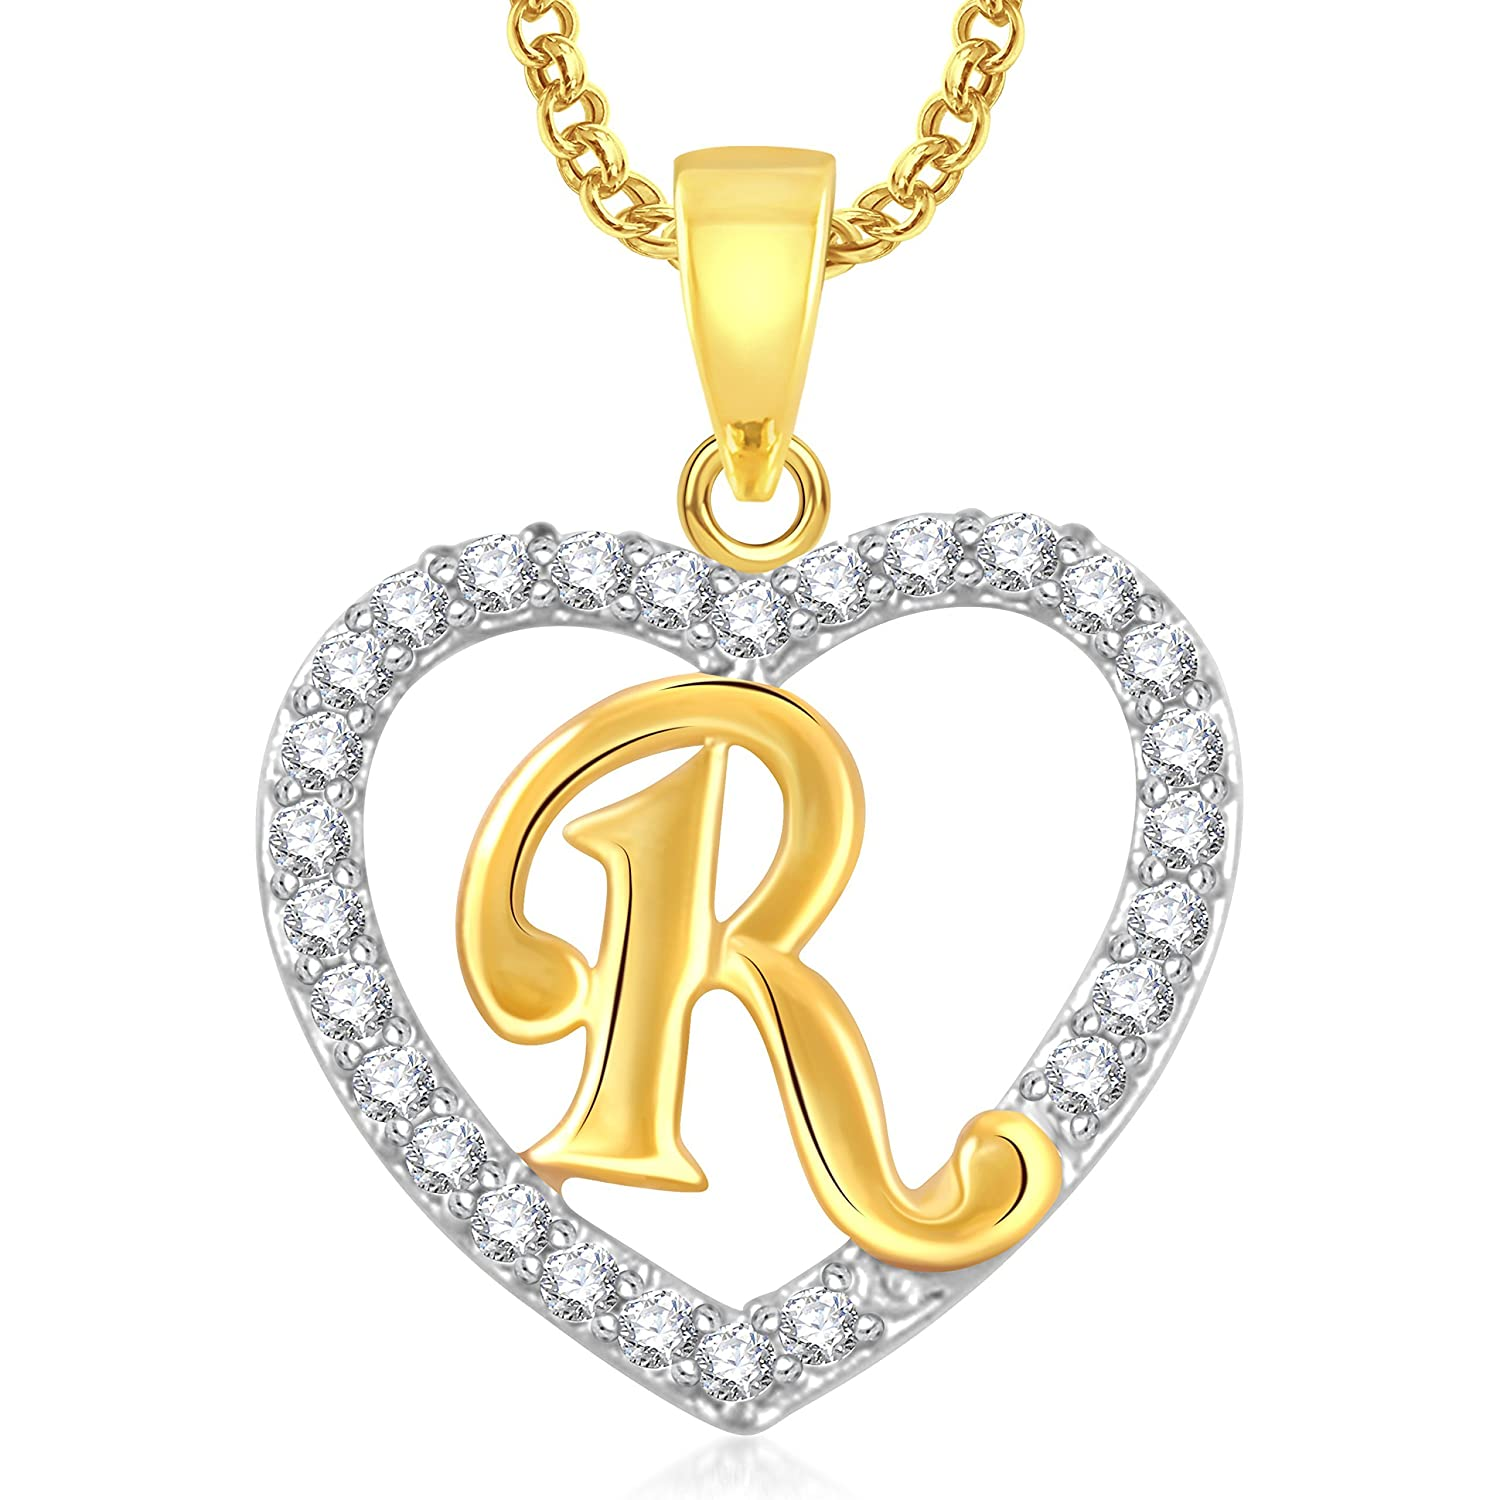 samuel pendants set product webstore gold locket necklaces h jewellery category number lockets chain l diamond heart with style